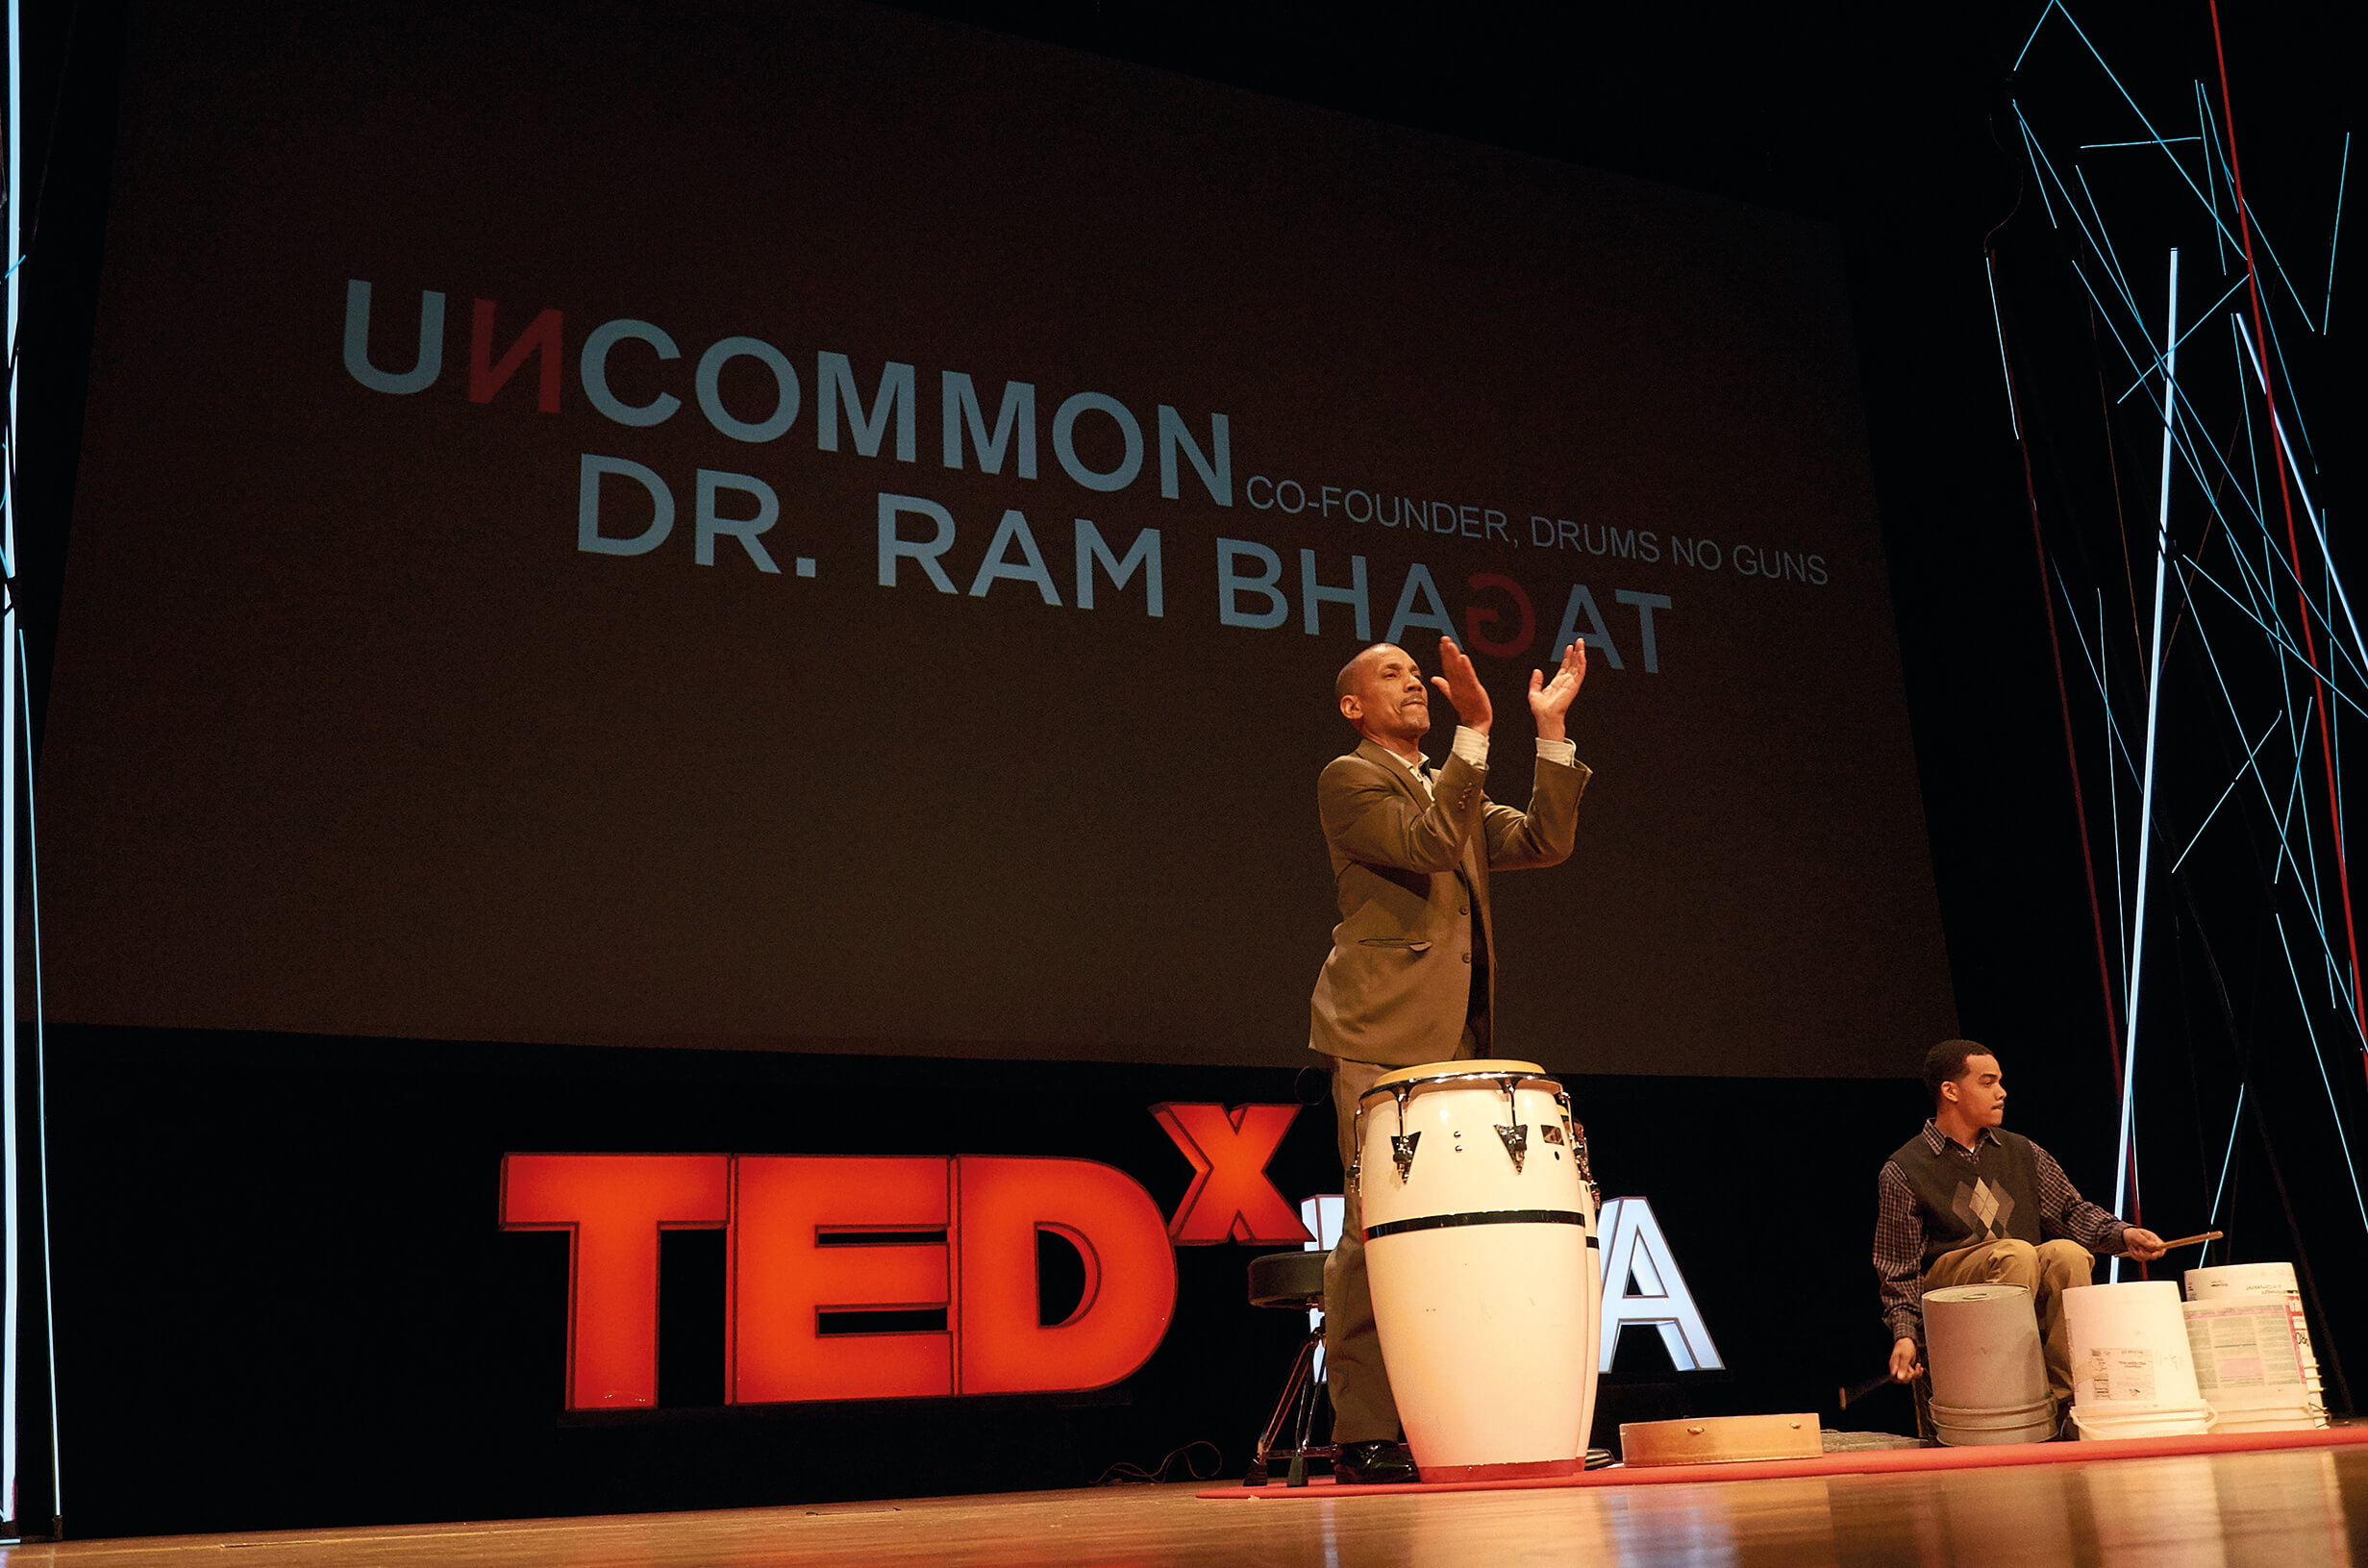 Ram Bhagat giving a TEDx talk in Richmond, Virginia, USA.